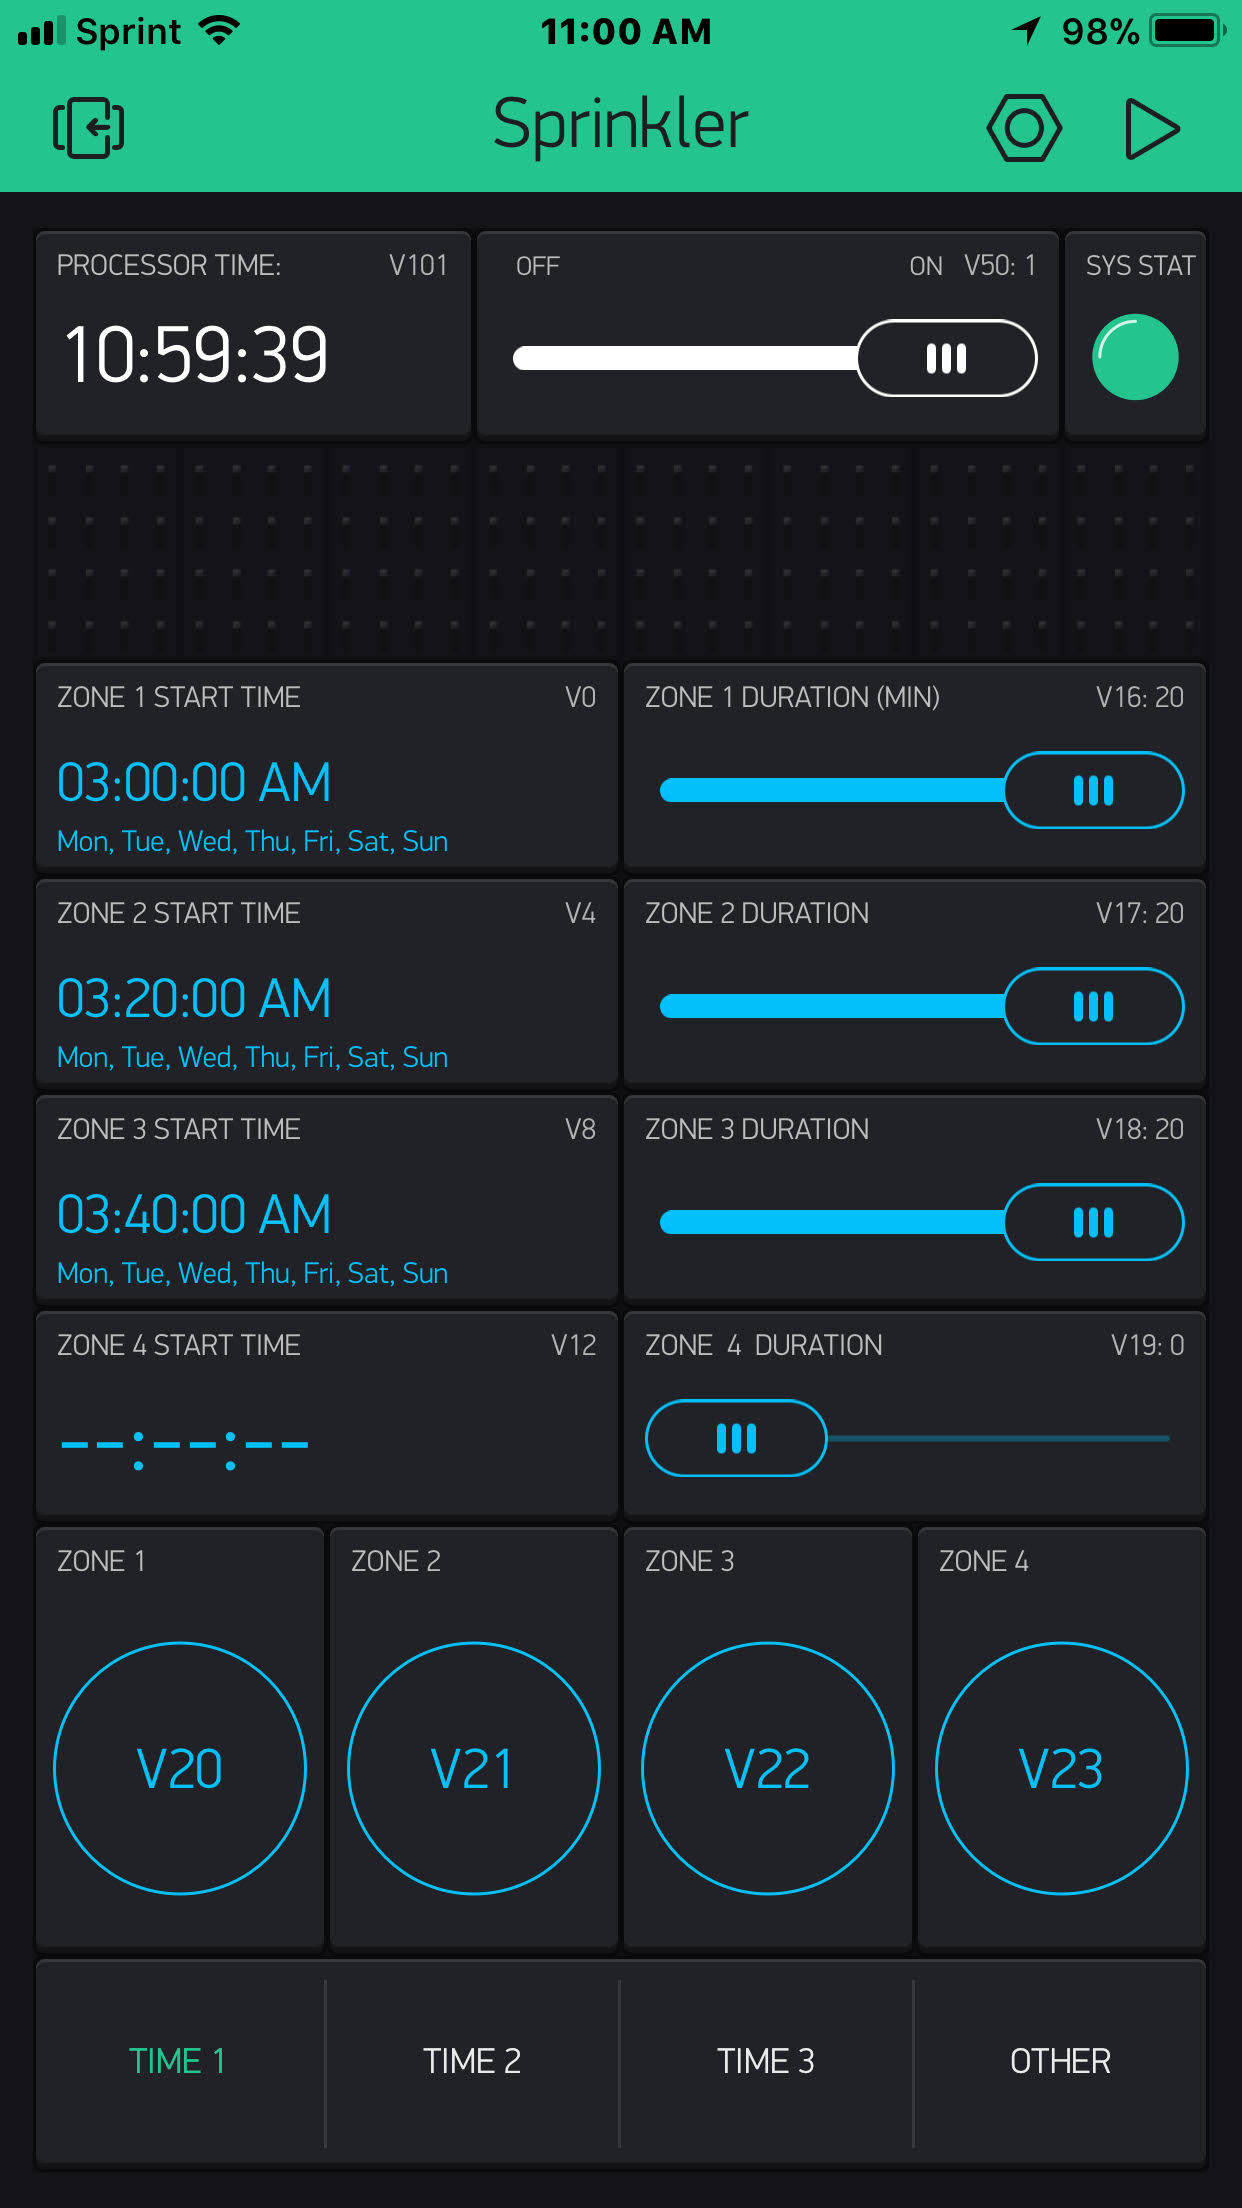 Simple 4 relay irrigation scheduler - Projects made with